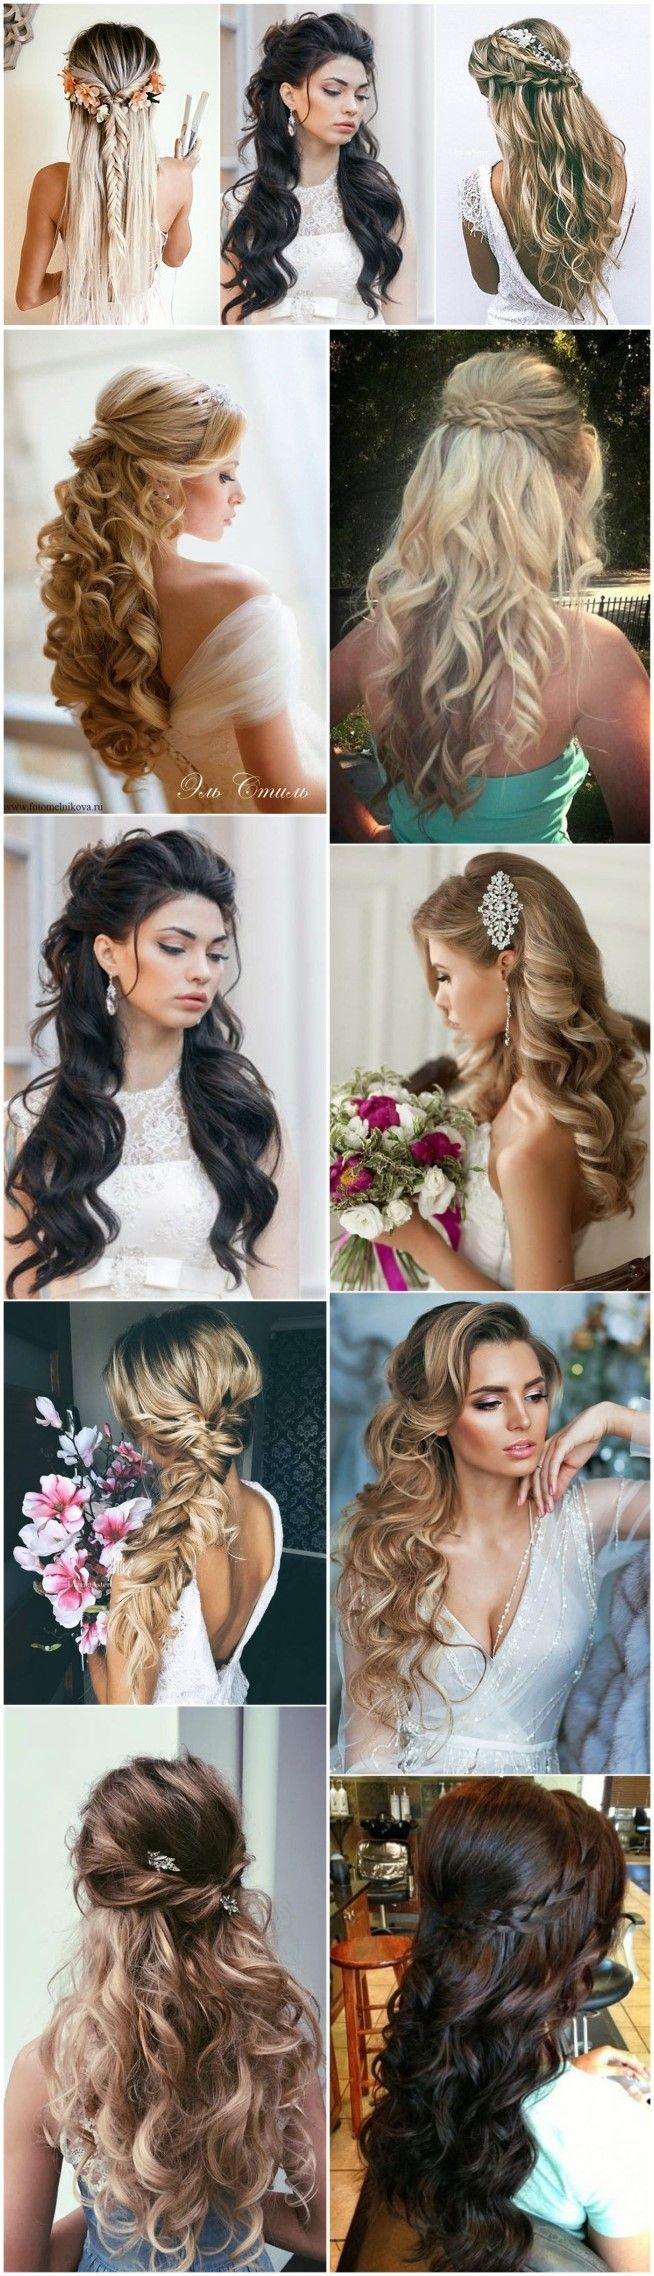 the 25+ best styles for long hair ideas on pinterest | long